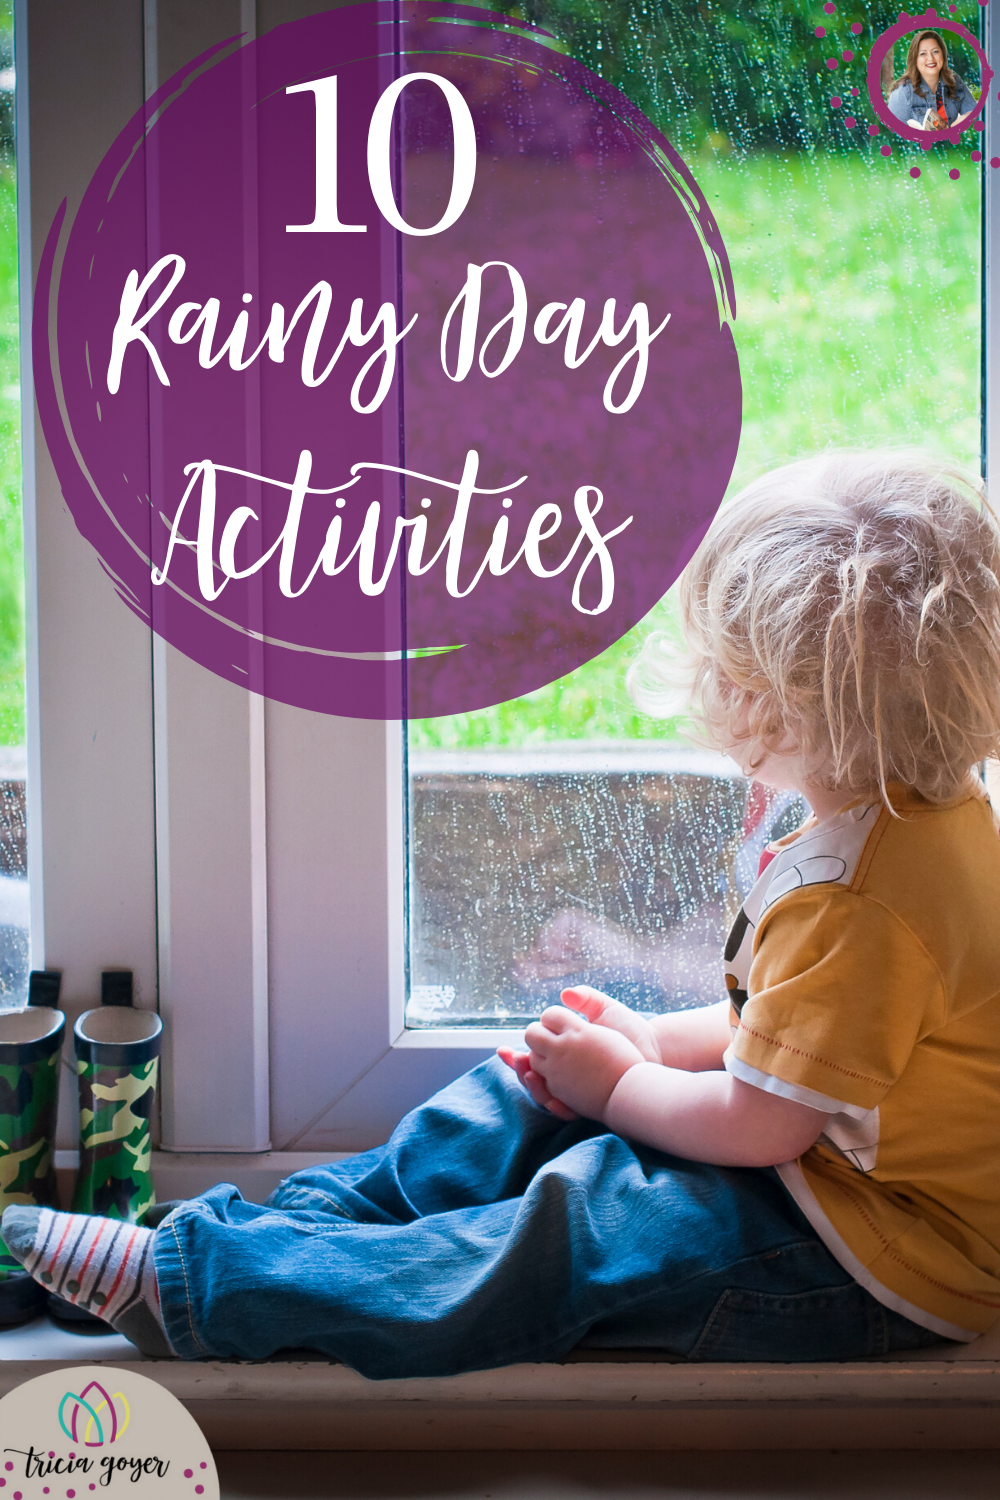 10 Rainy Day Activities - Tricia Goyer